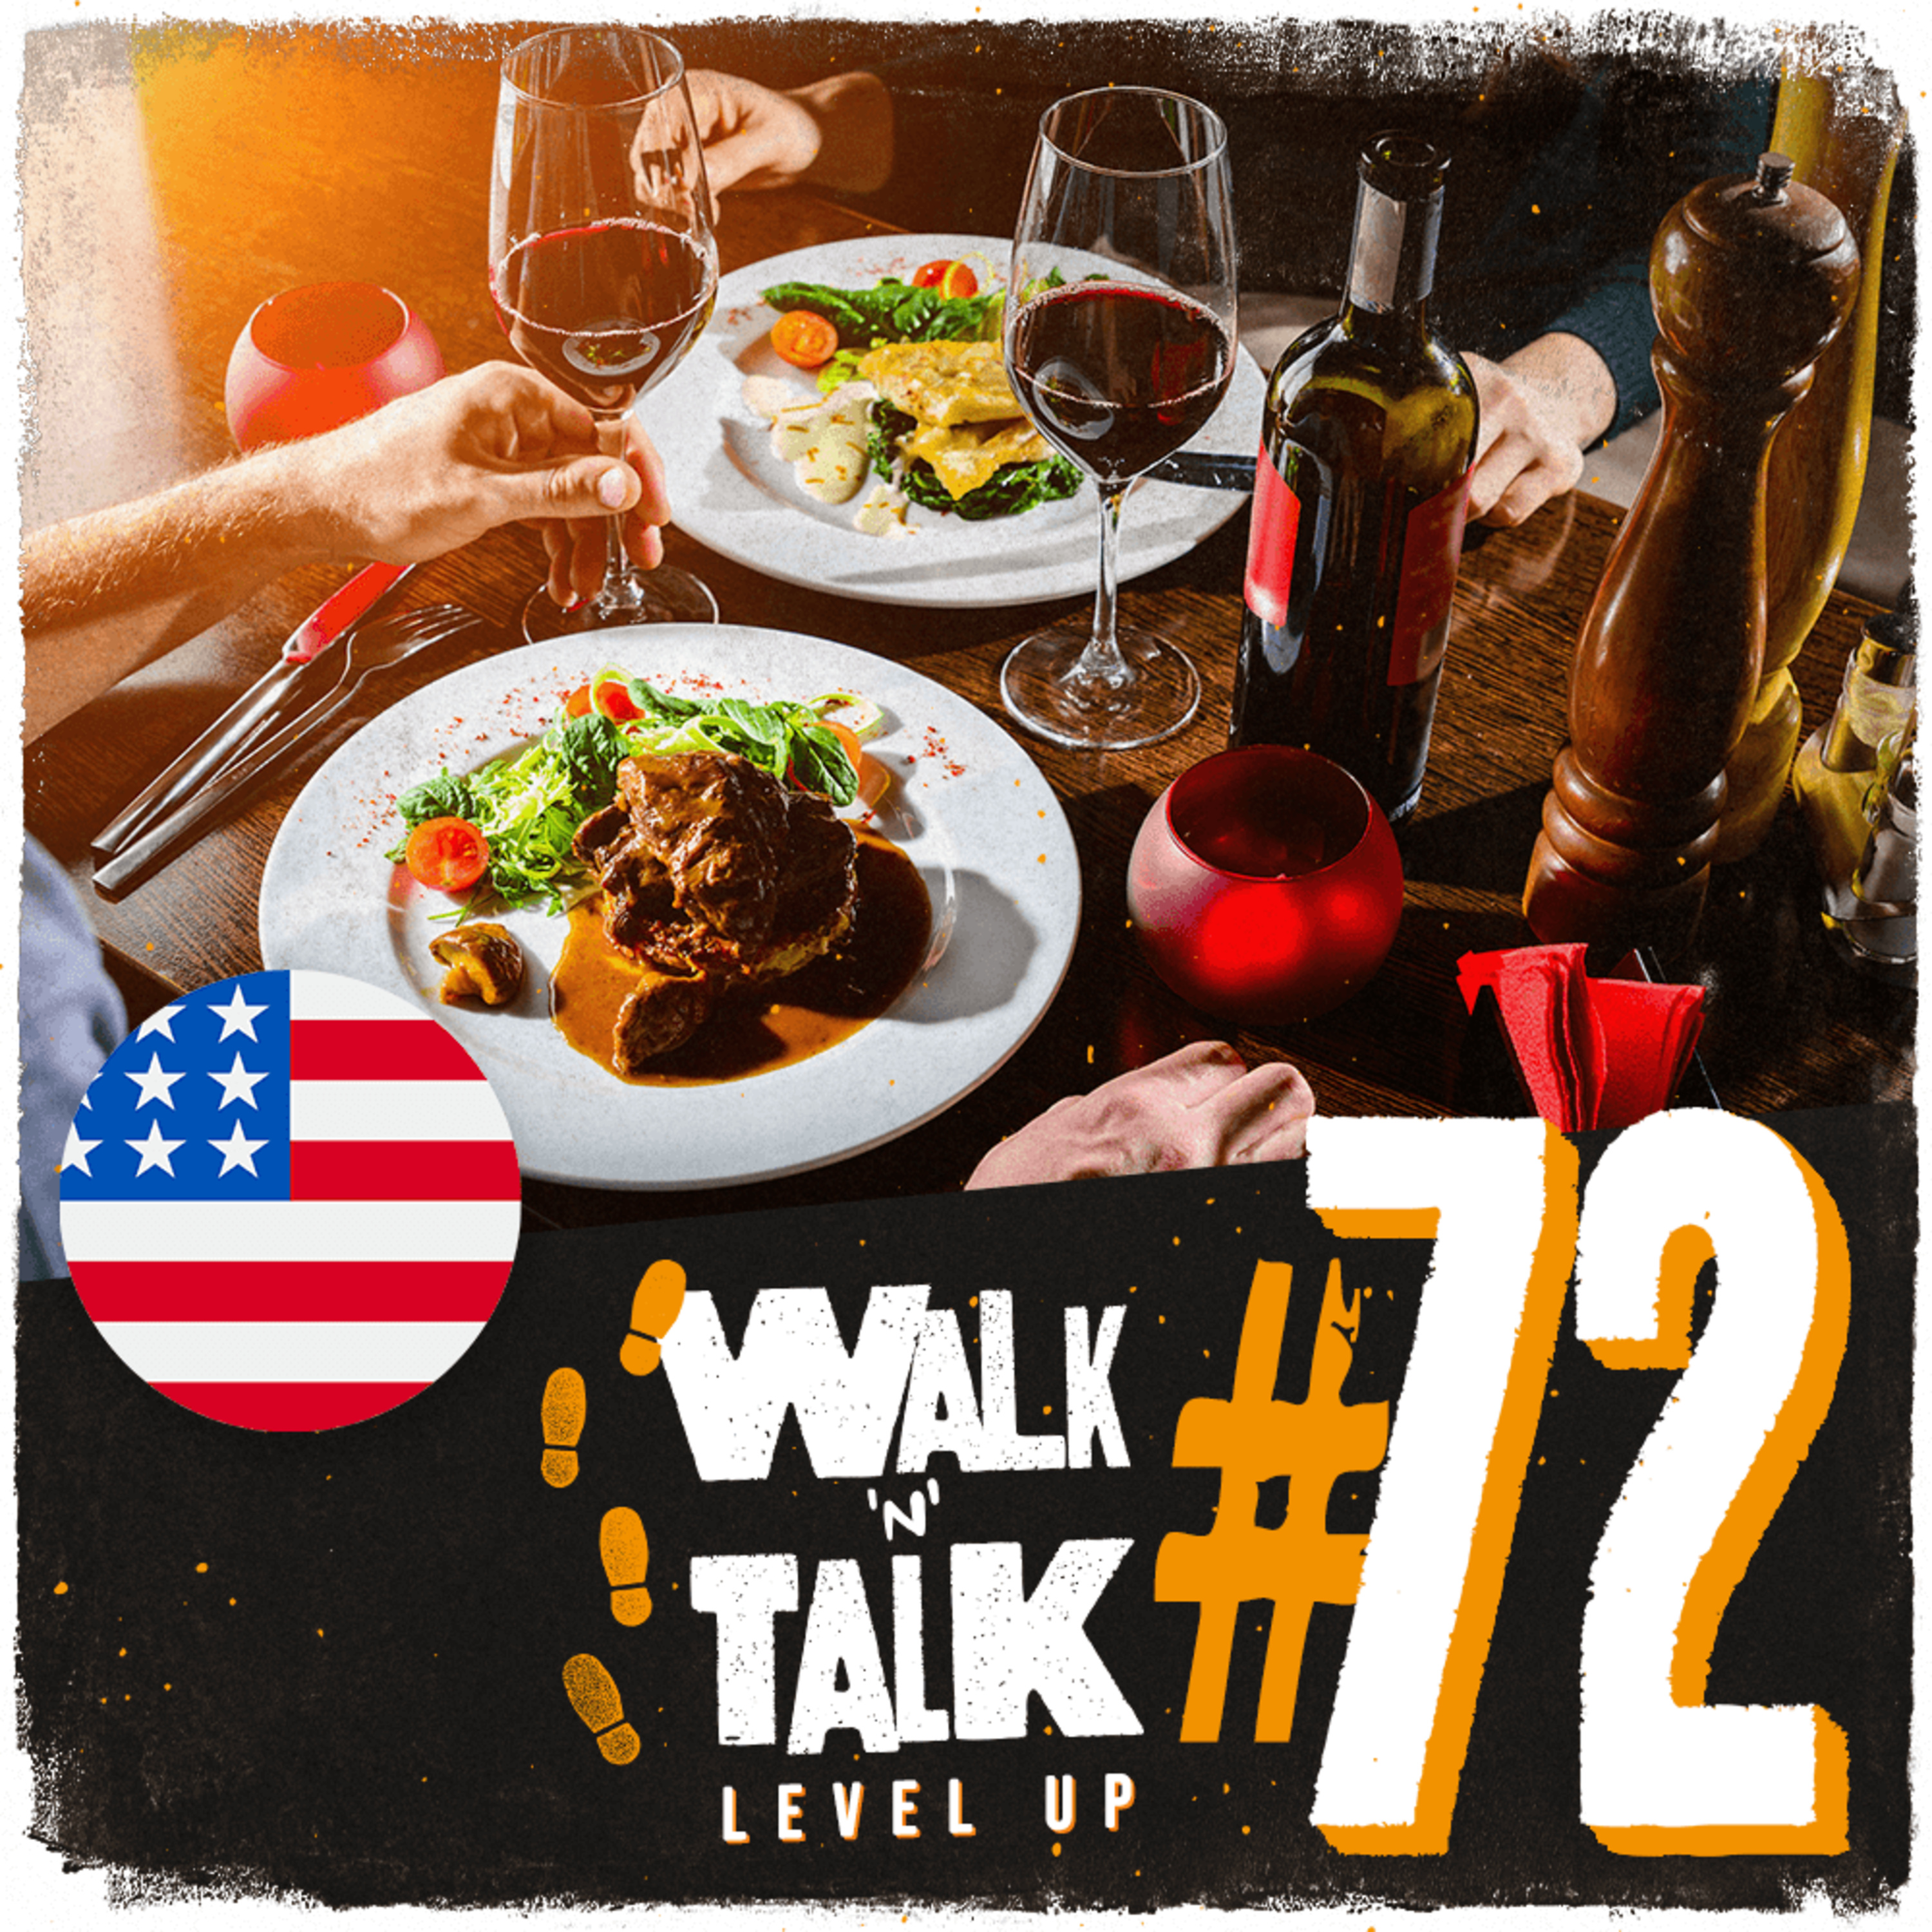 Walk 'n' Talk Level Up #72 - Setting up the table